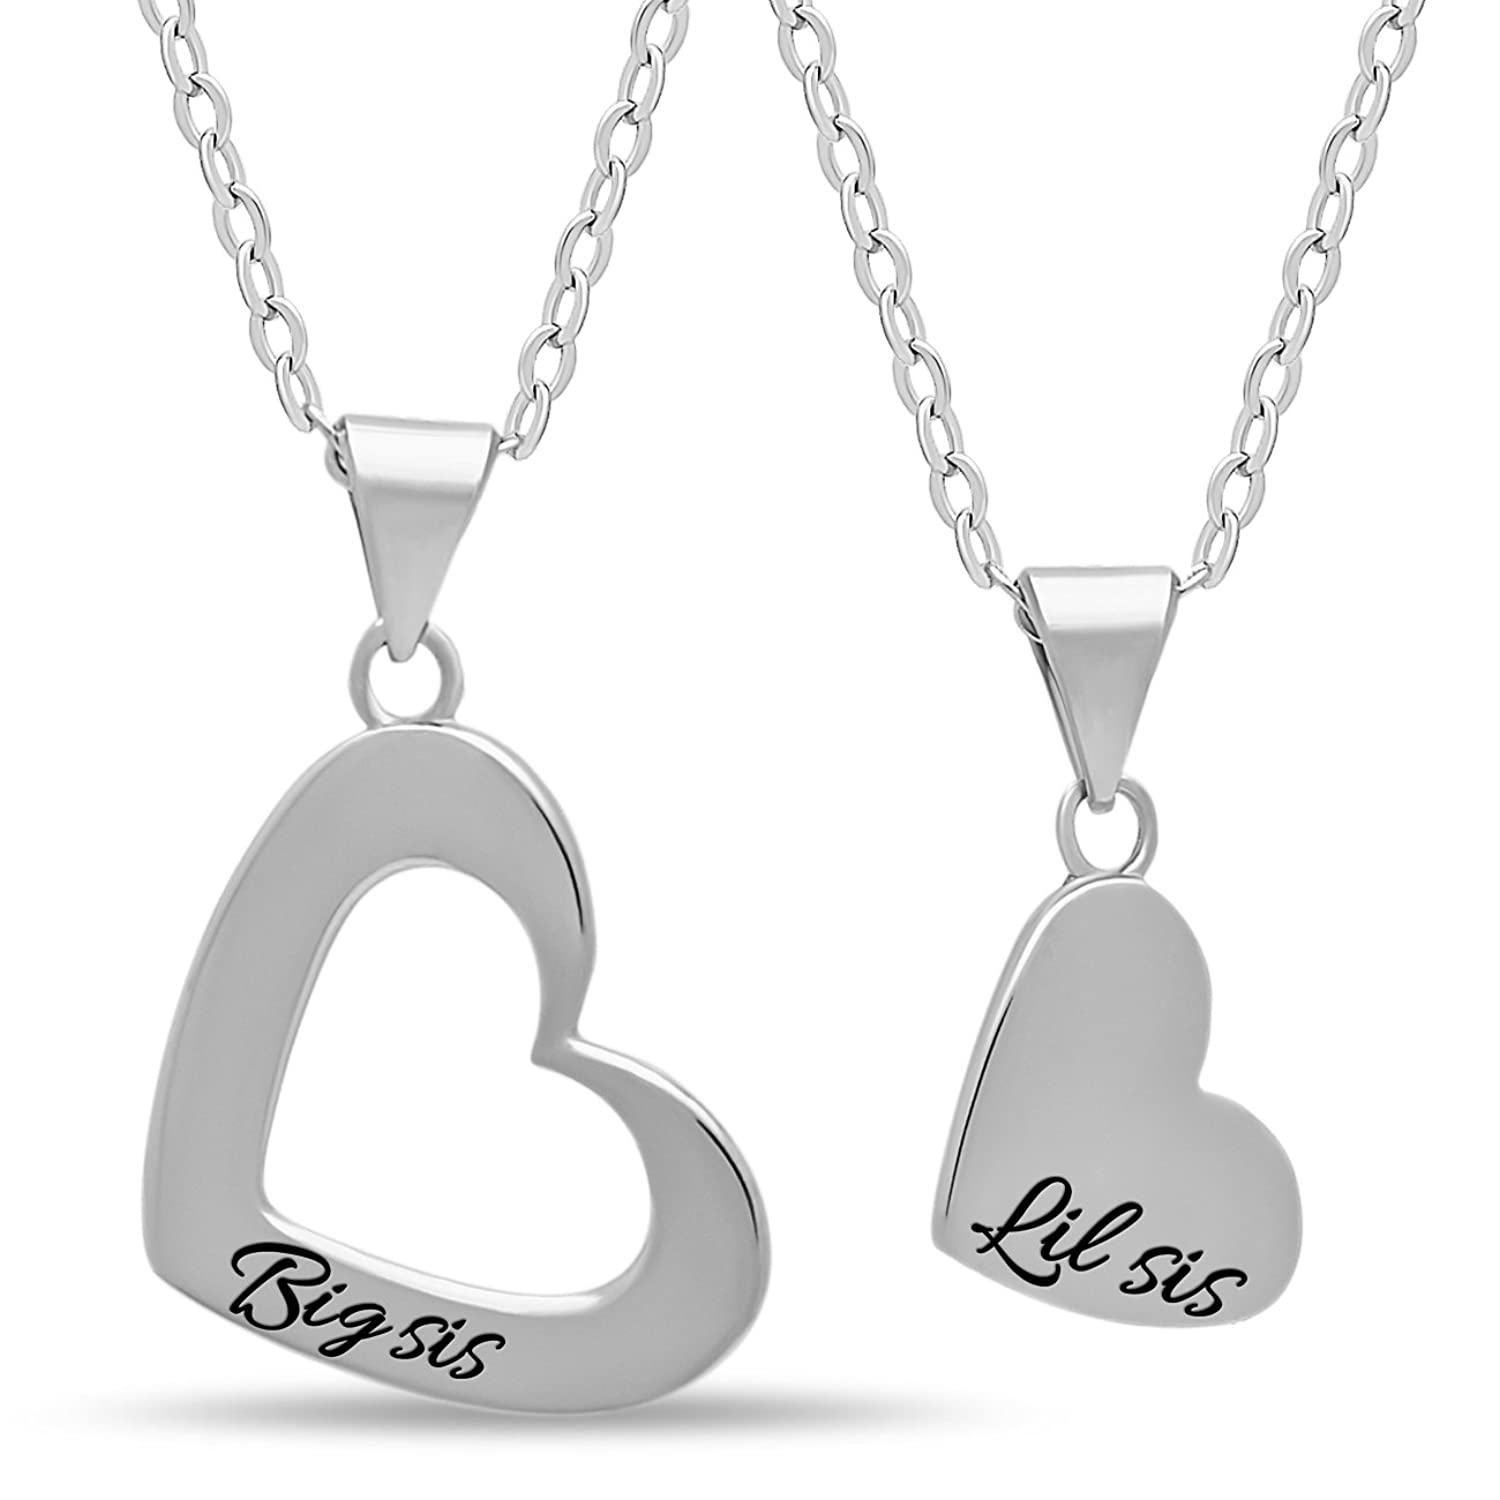 """925 Sterling Silver Sister Heart Necklace Set for Big Sis Lil Sis - Engraved 14K Gold or Silver Plated for Two Sisters Pendants Double Heart Necklaces for Sisters Chain 16"""" + 2"""" Ext w Clasp"""